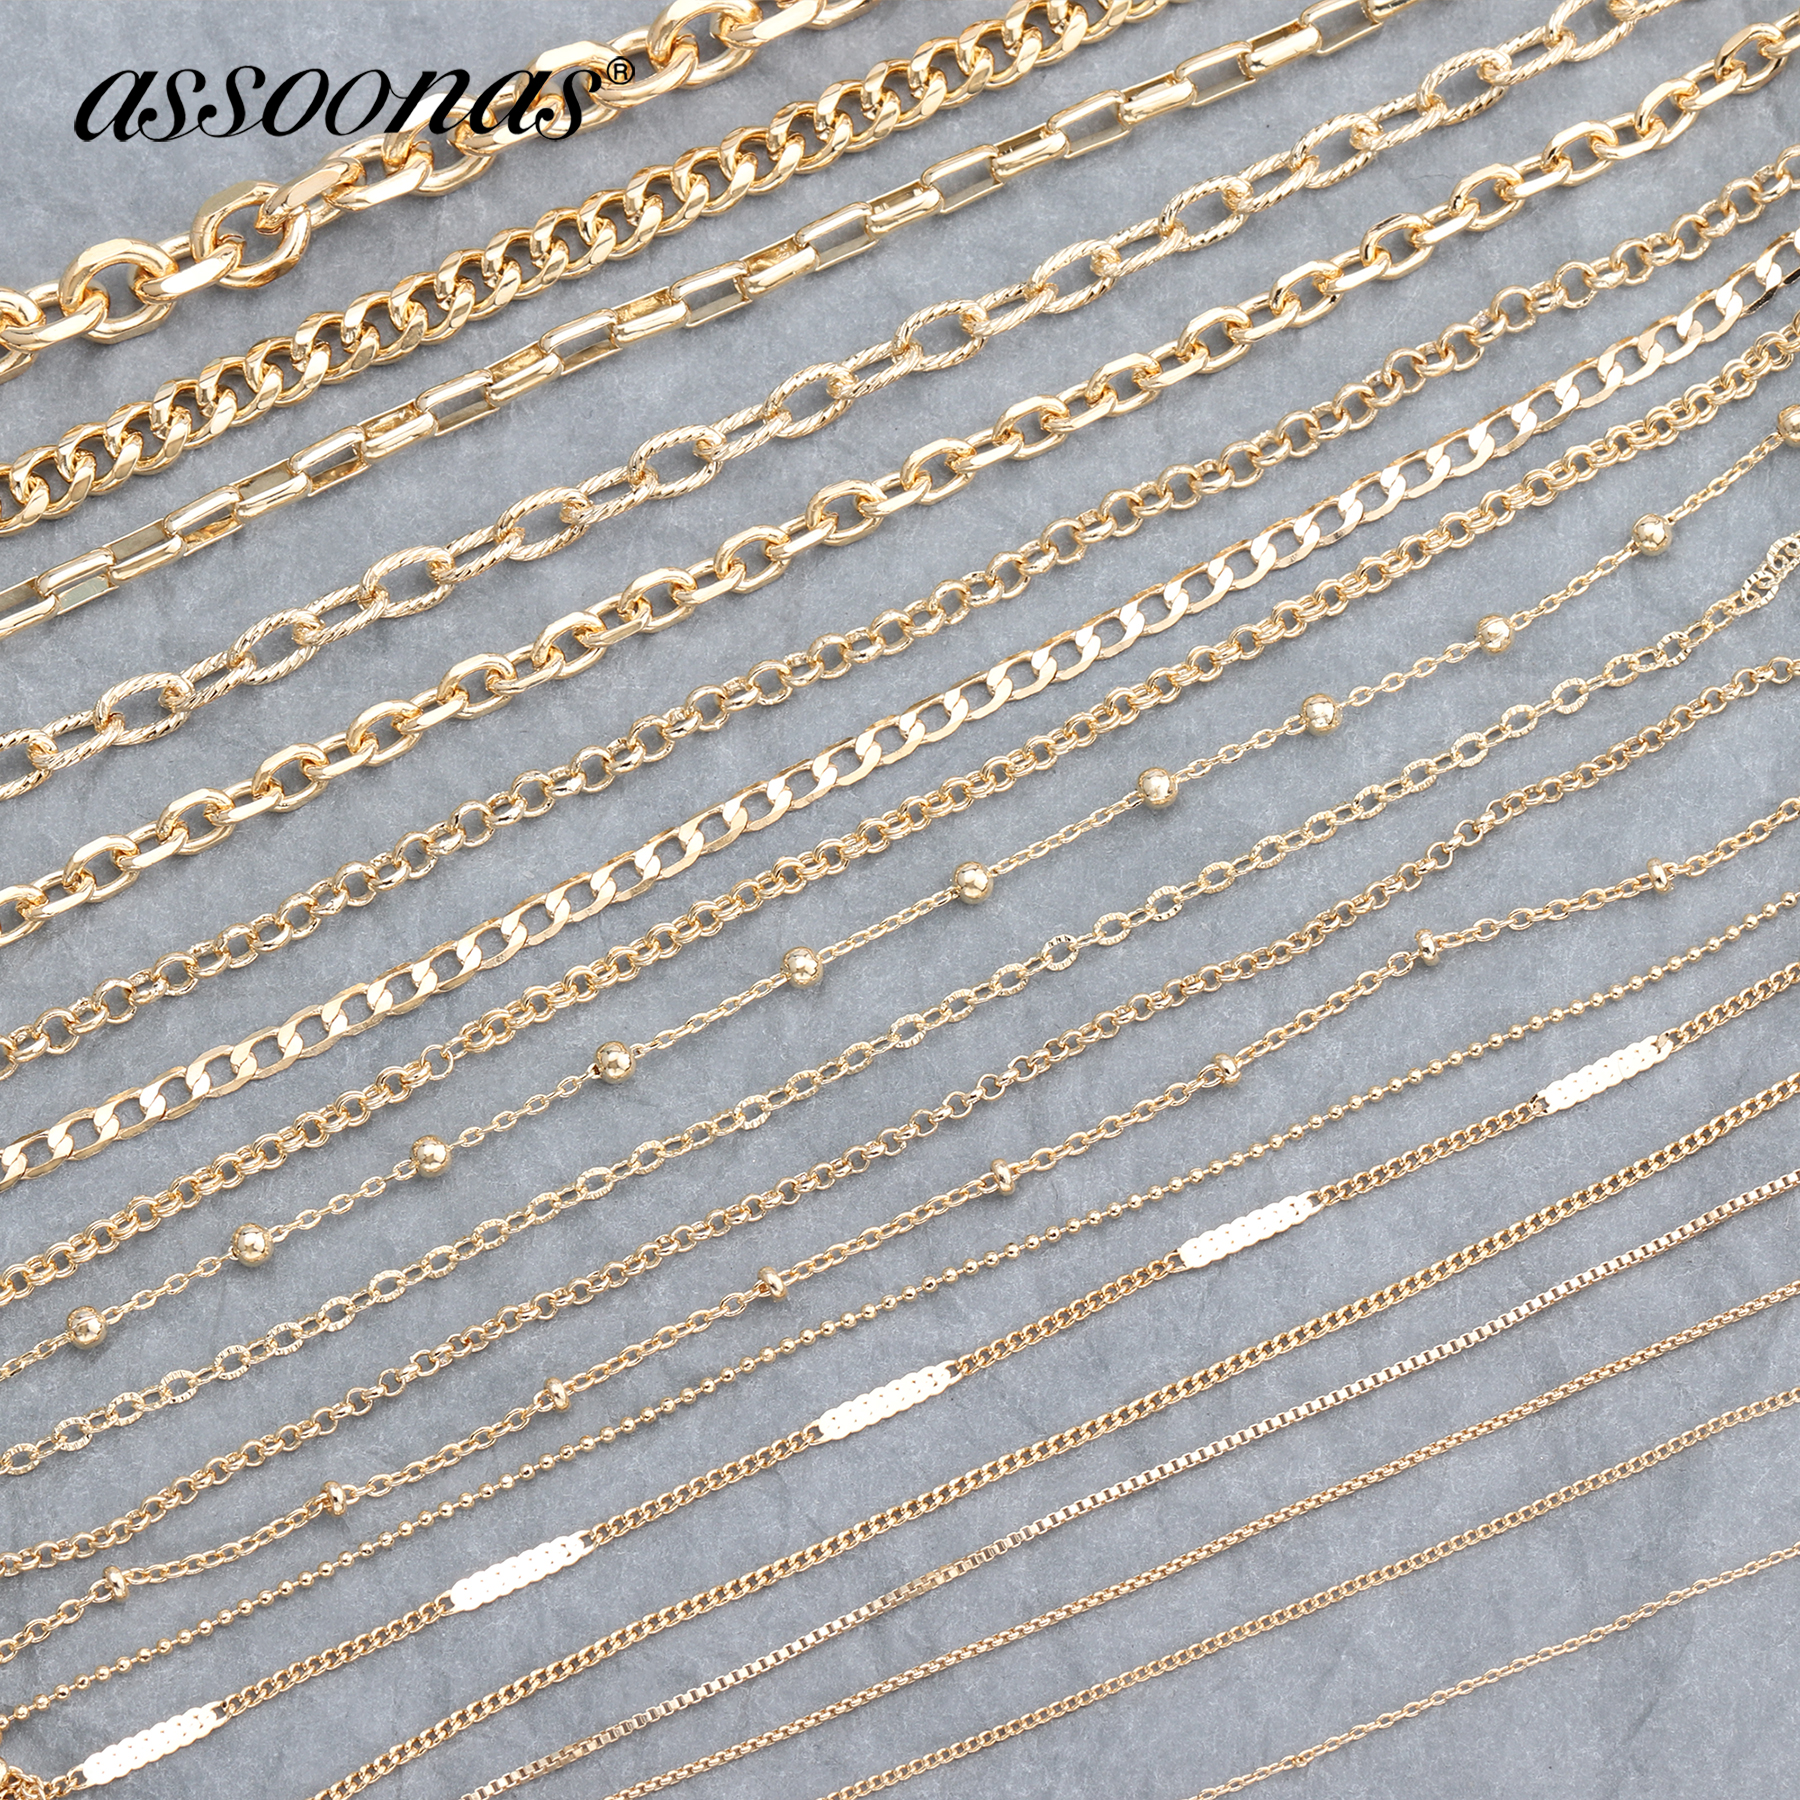 Assoonas C65,18K Gold Chain,diy Chain,jewelry Accessories,hand Made,jewelry Making,jewelry Findings,bracelet Necklace,3m/lot